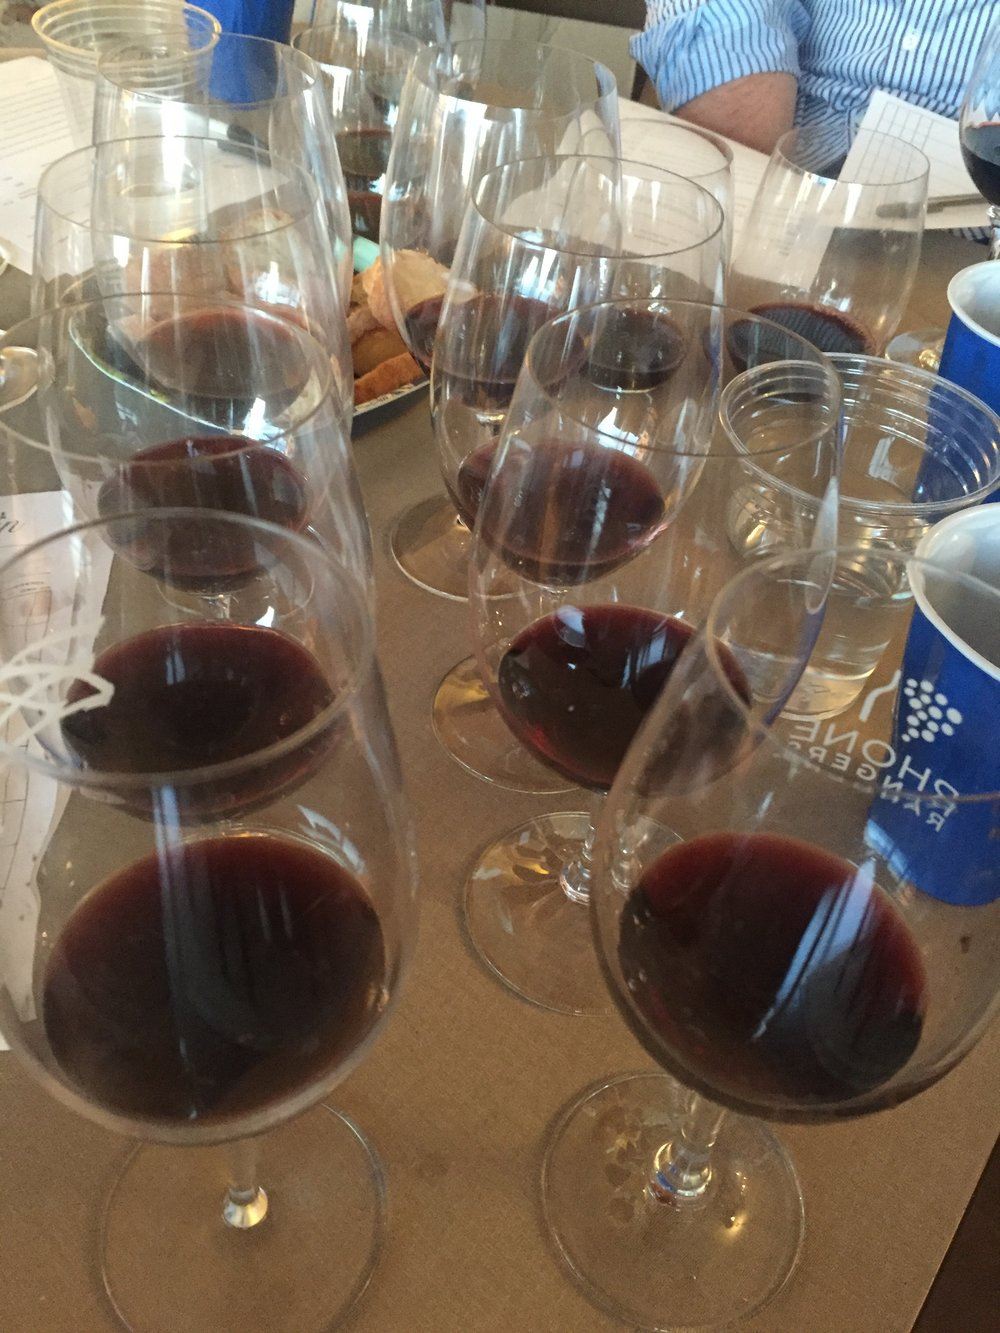 eight Mourvèdre-based wines